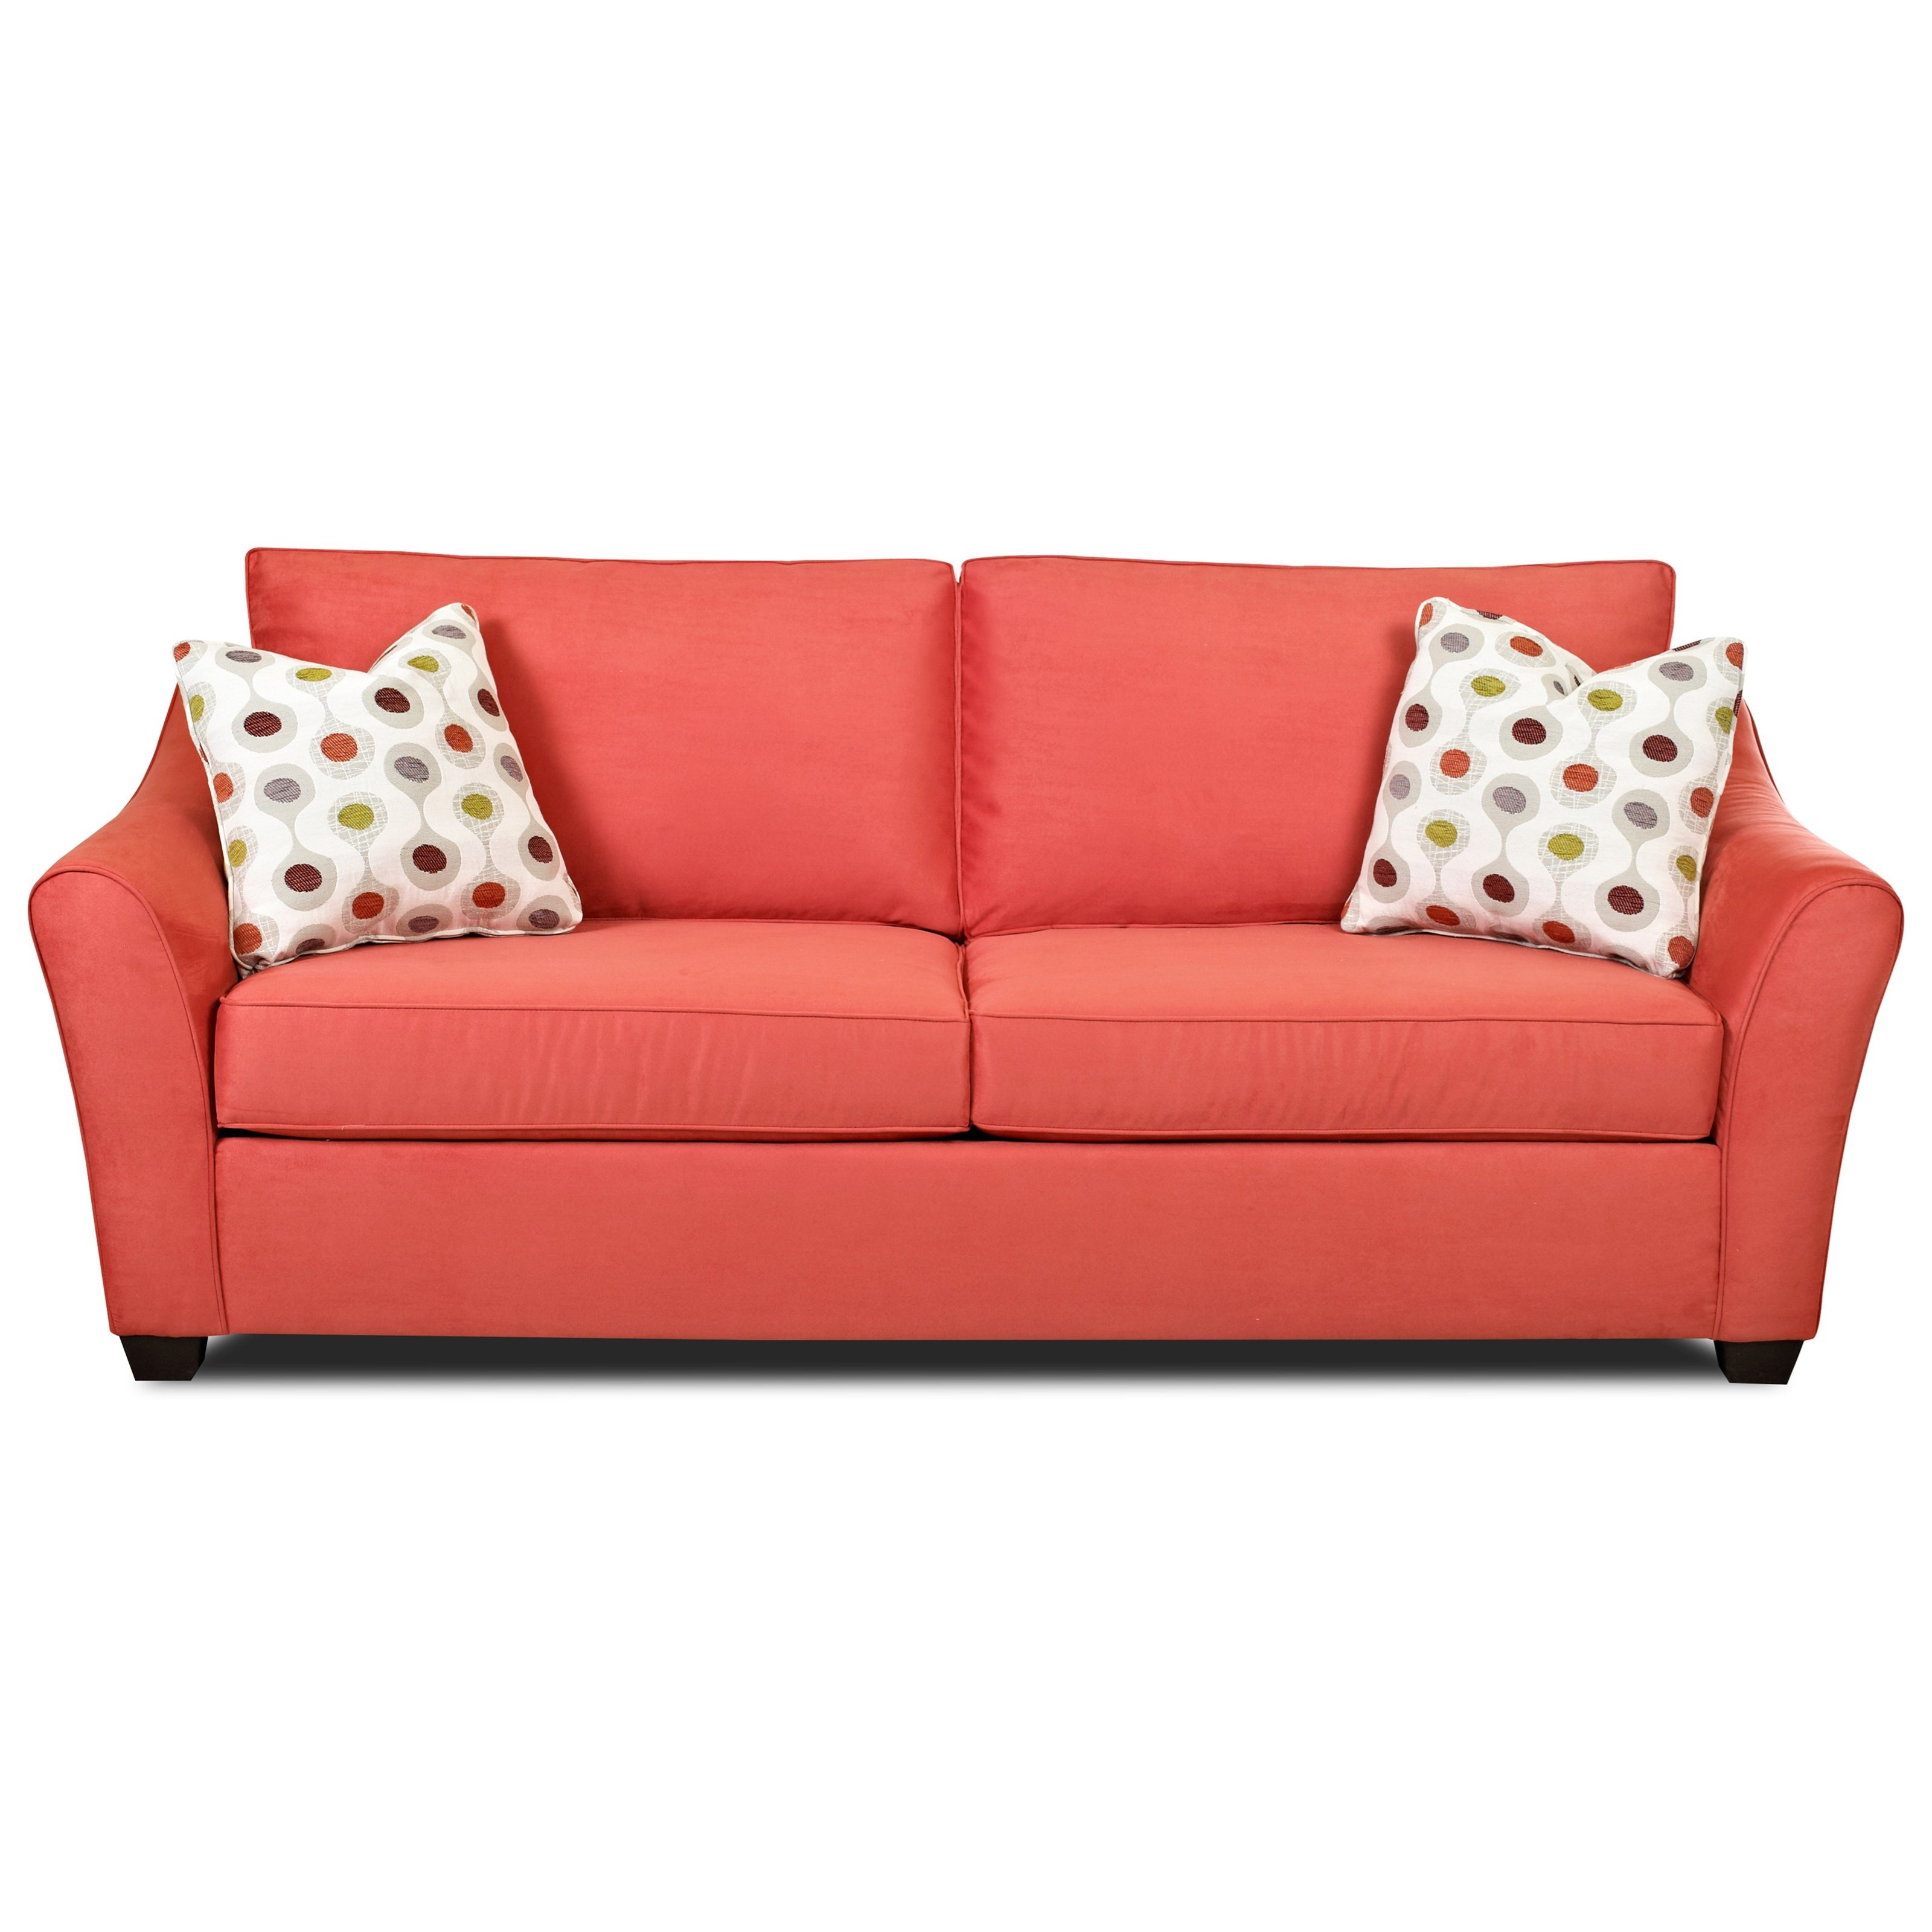 Linville Sofa by Klaussner at Johnny Janosik